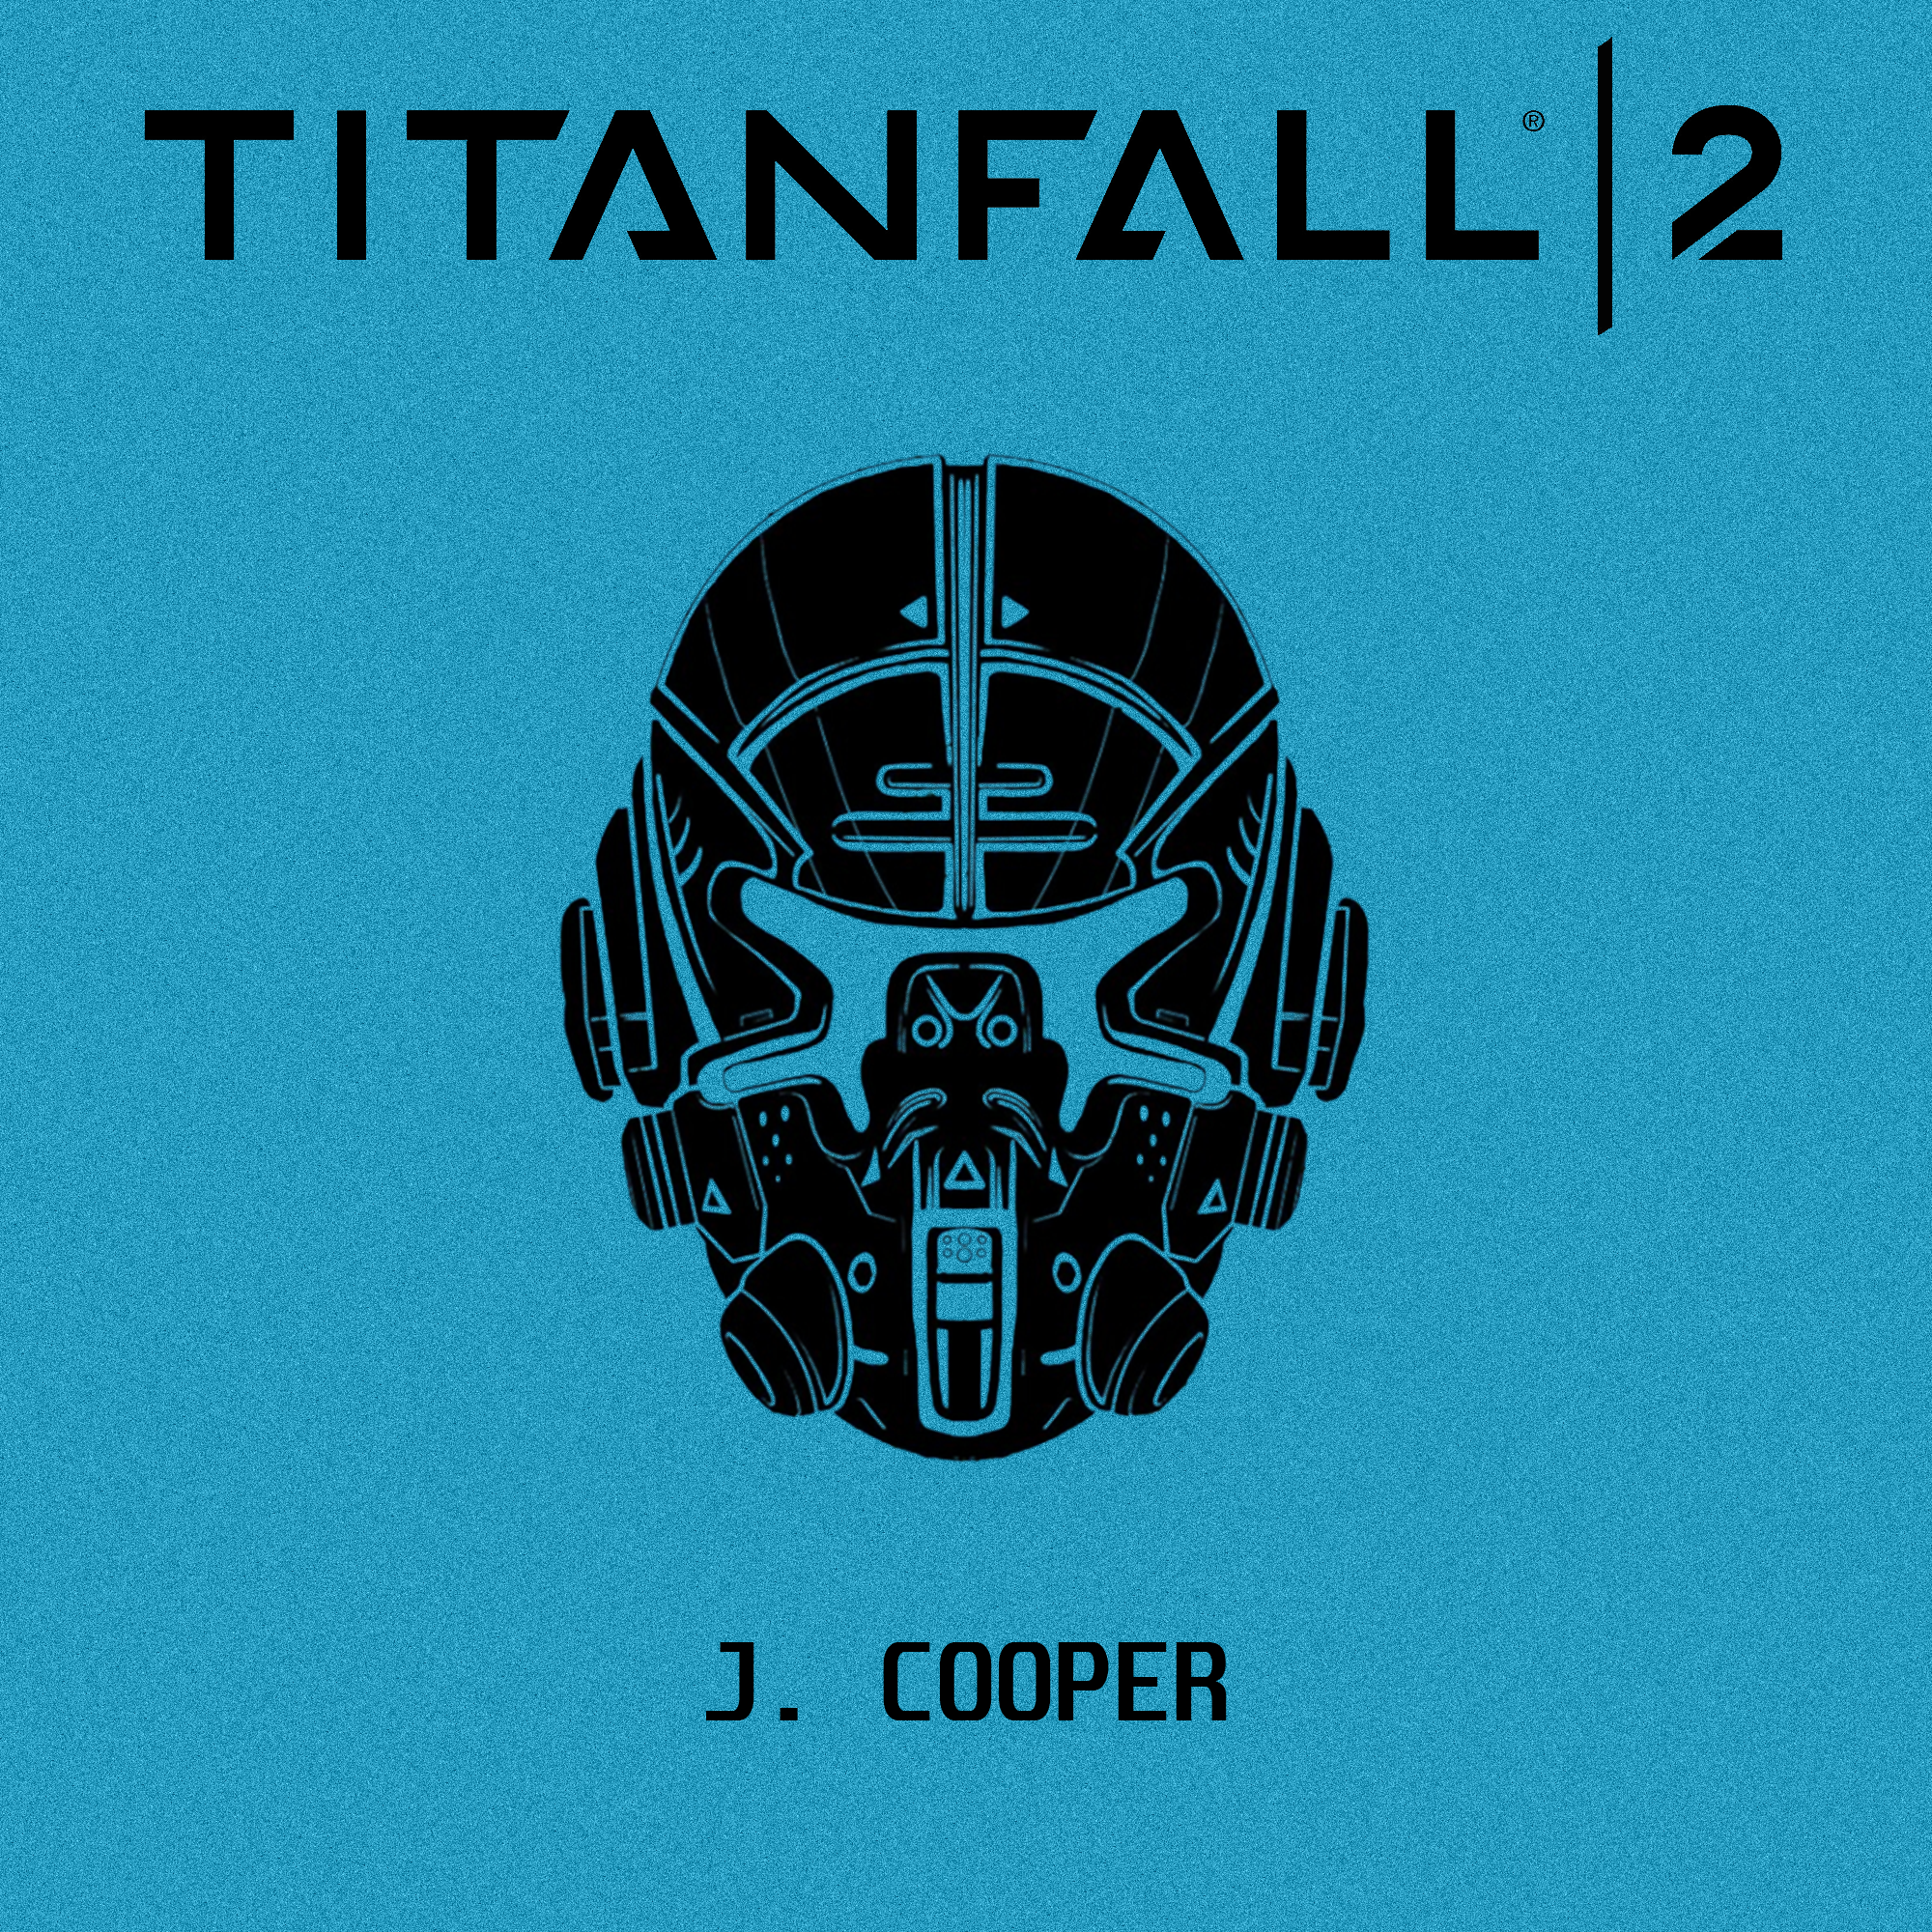 Titanfall 2 Jack Cooper Titanfall Character Drawing Poster Art